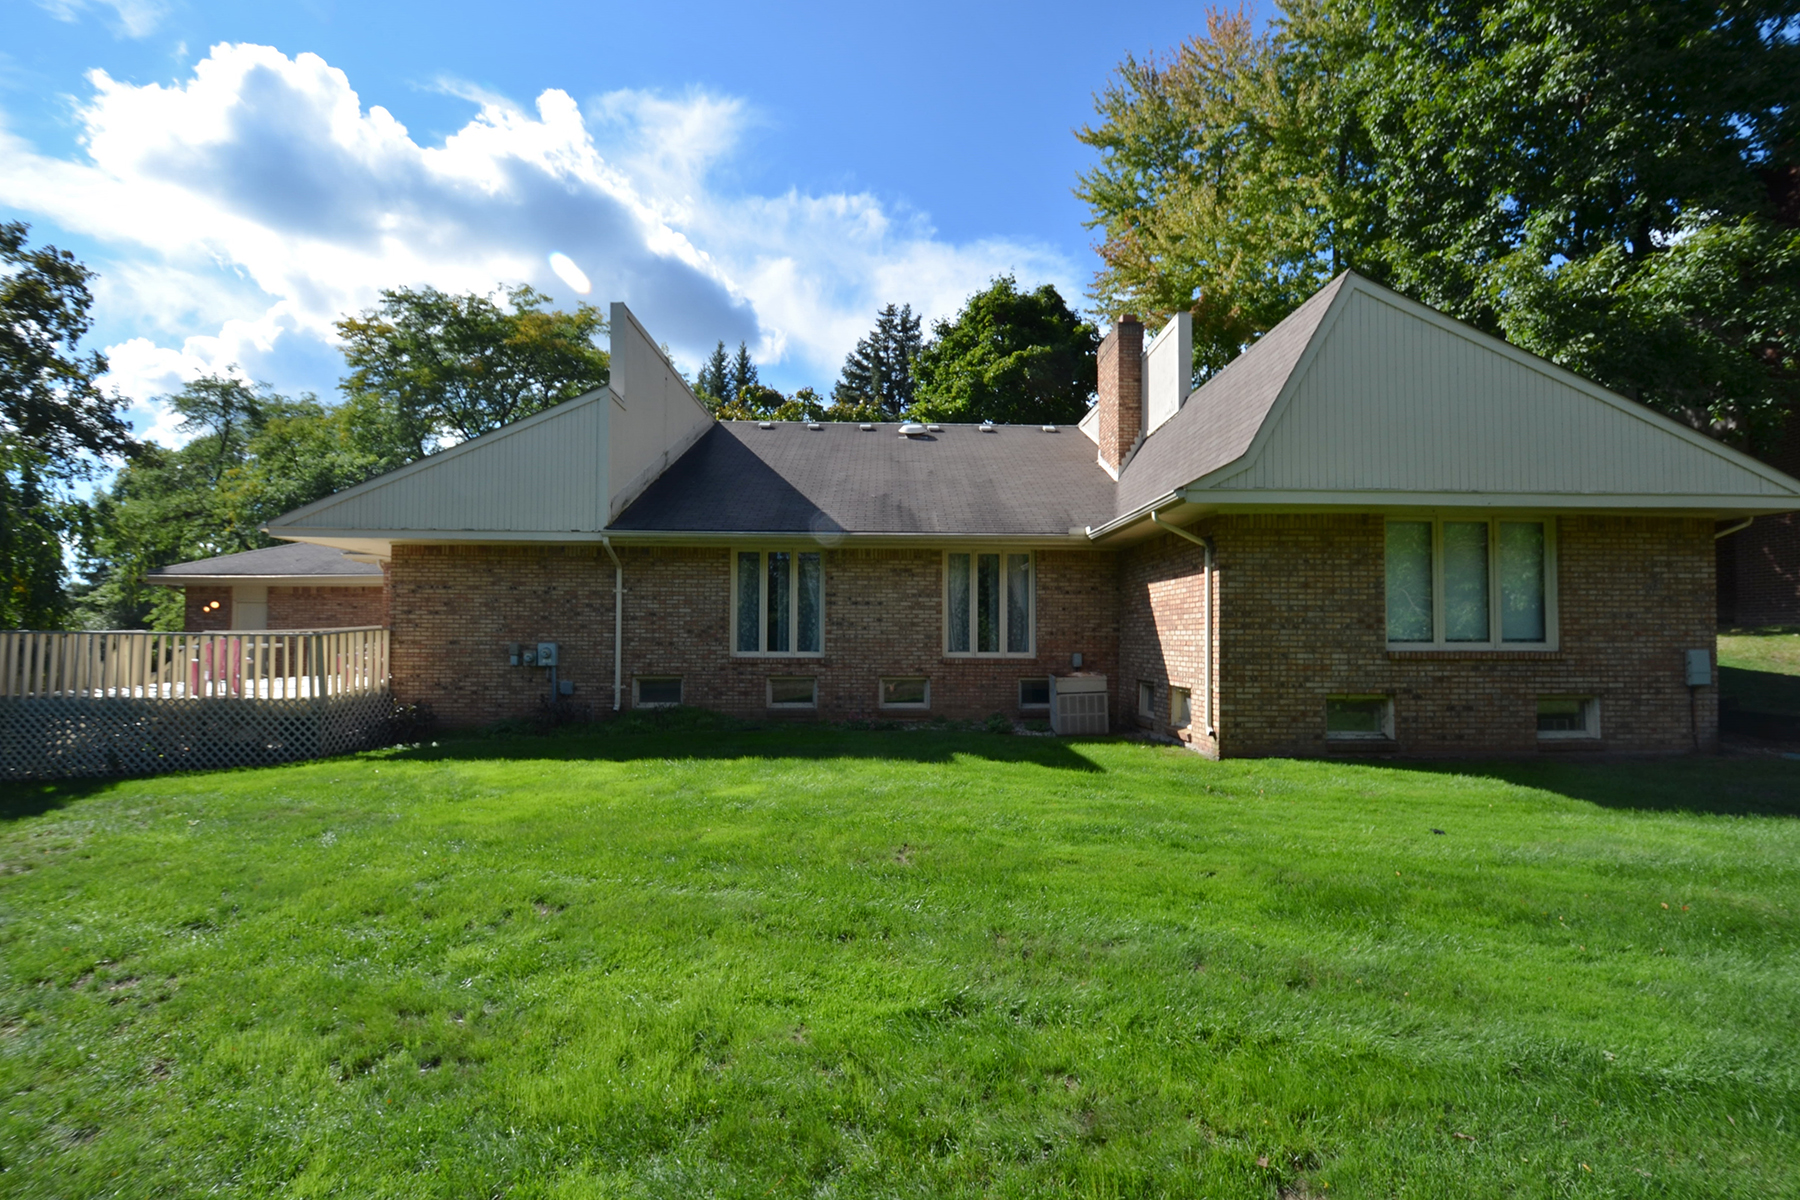 Single Family Home for Sale at West Bloomfield Township 2040 Wabeek Hill Court Bloomfield Hills, Michigan, 48302 United States